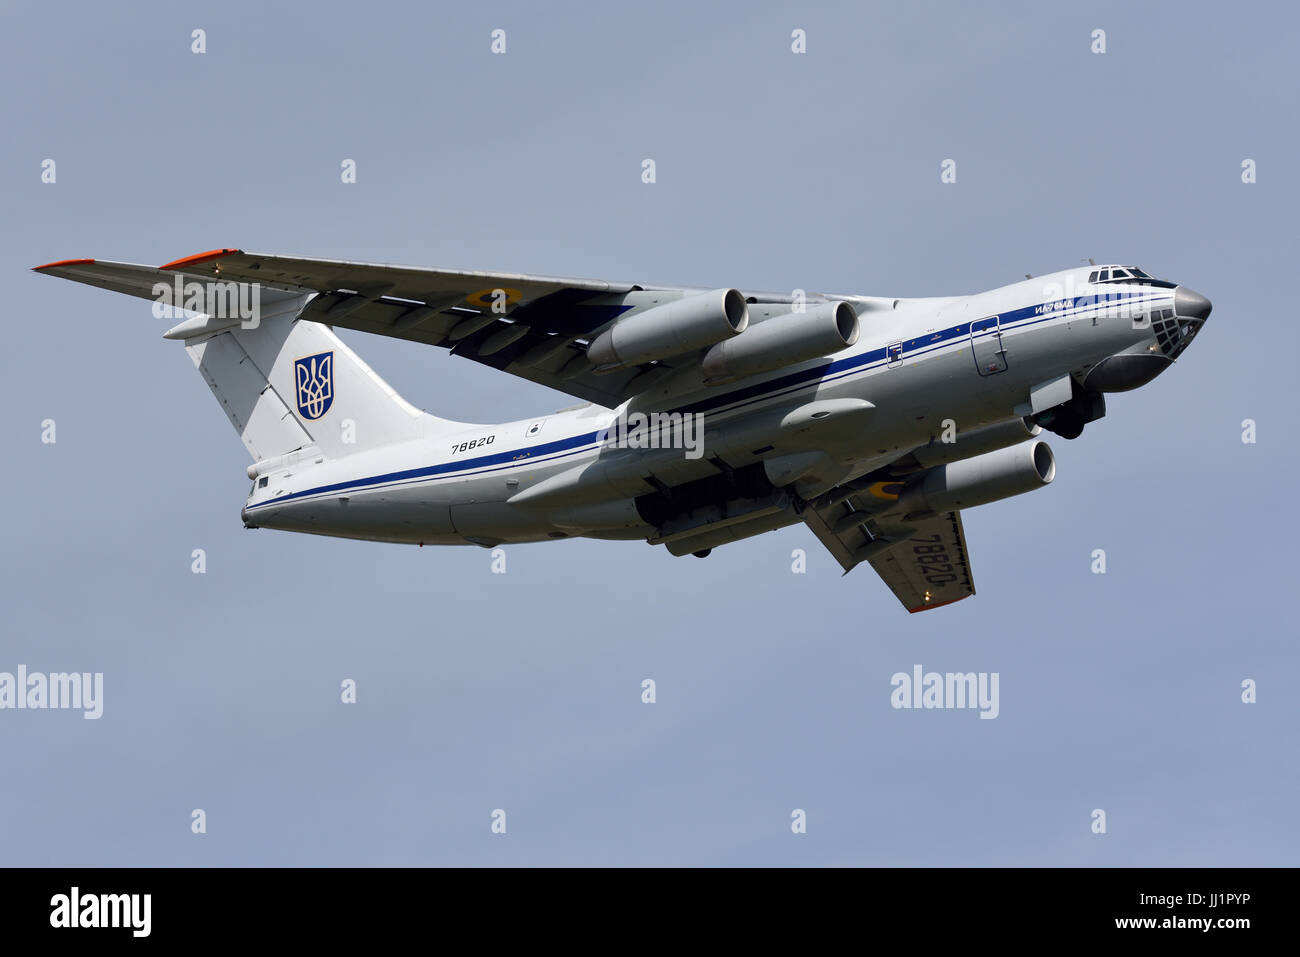 ilyushin-il-76-candid-transport-plane-of-the-ukrainian-air-force-departing-JJ1PYP.jpg